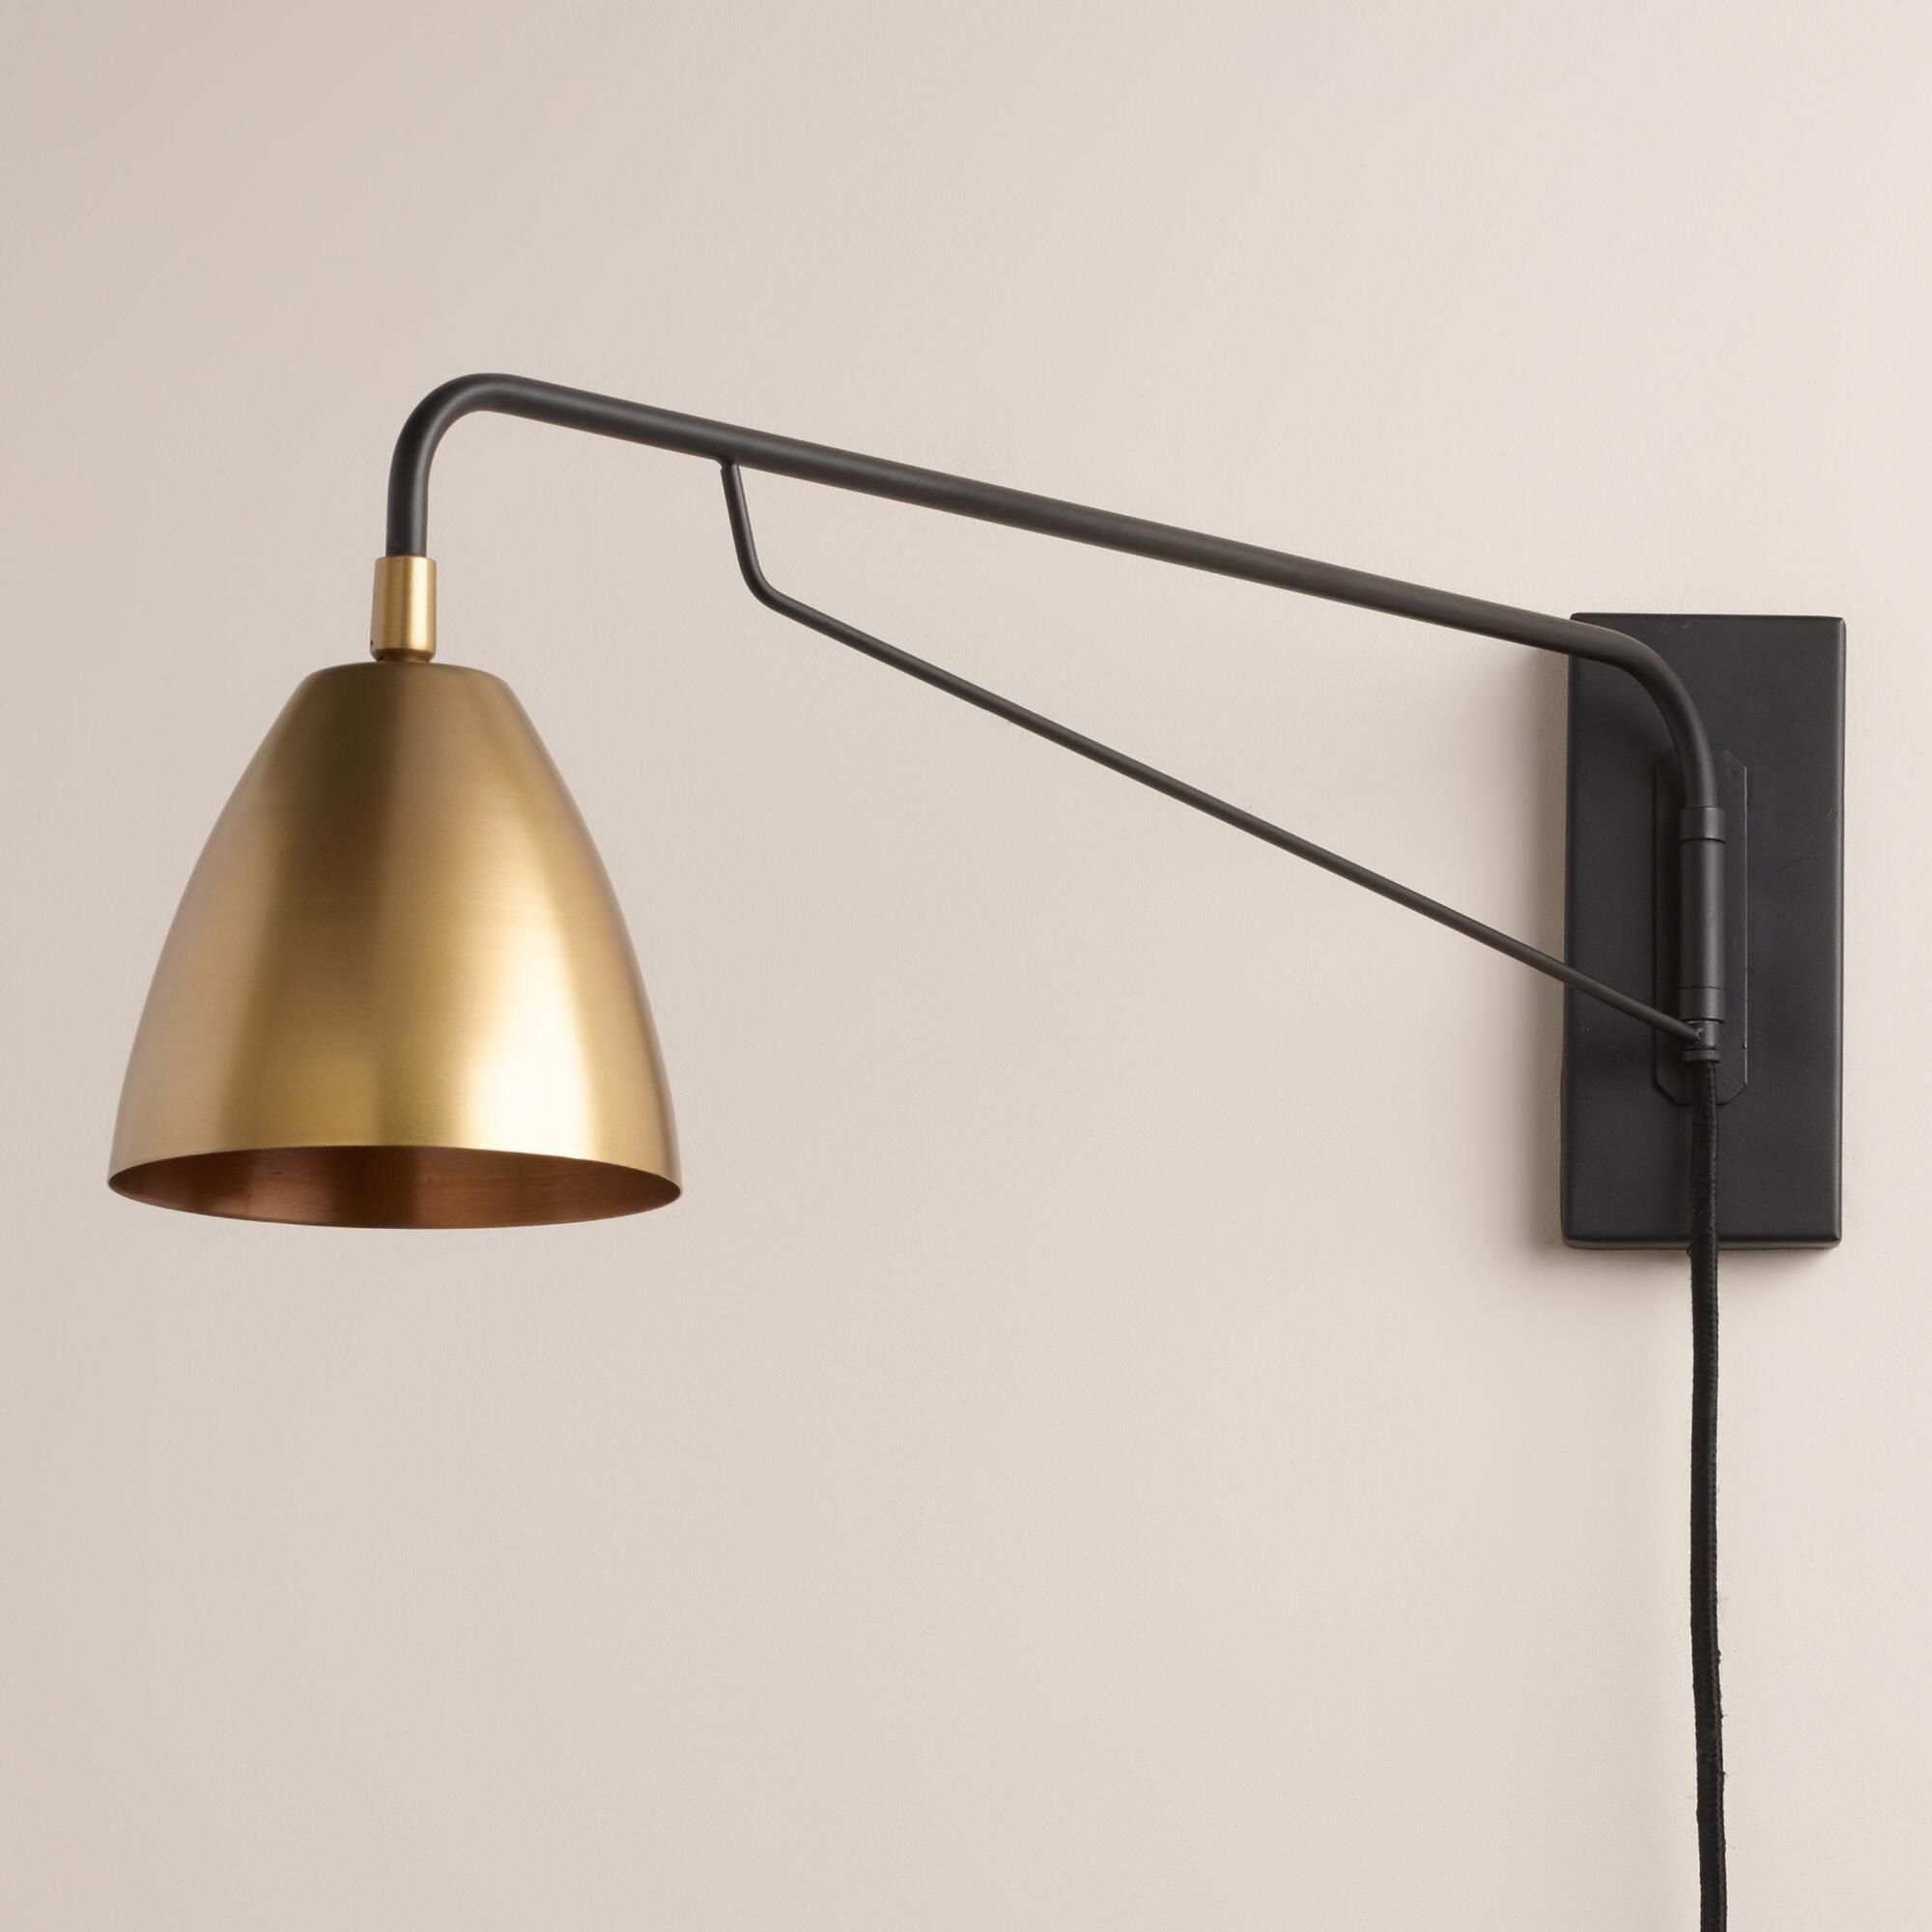 Brass Nook Pivoting Wall Sconce Mid century modern design, Lighting solutions and Antique brass